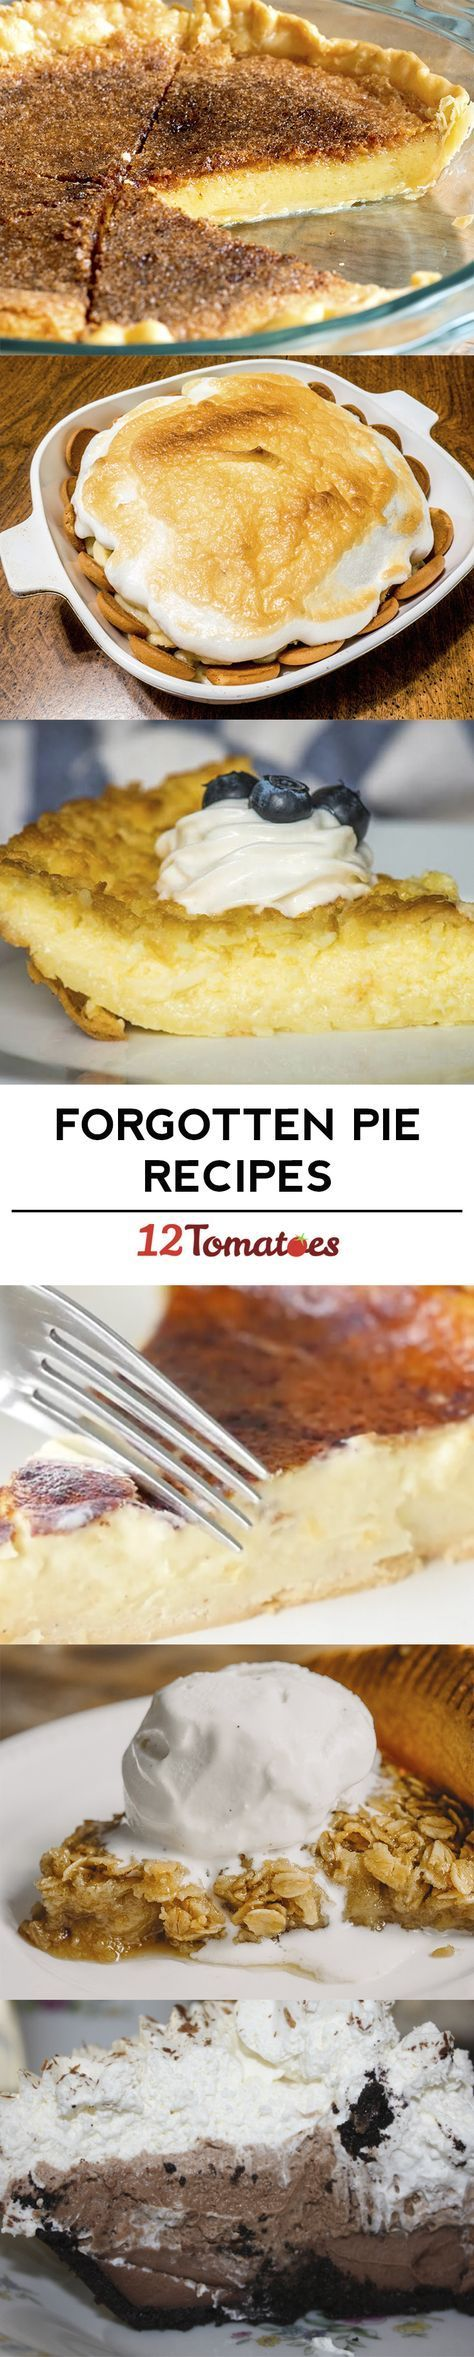 Forgotten pie recipes